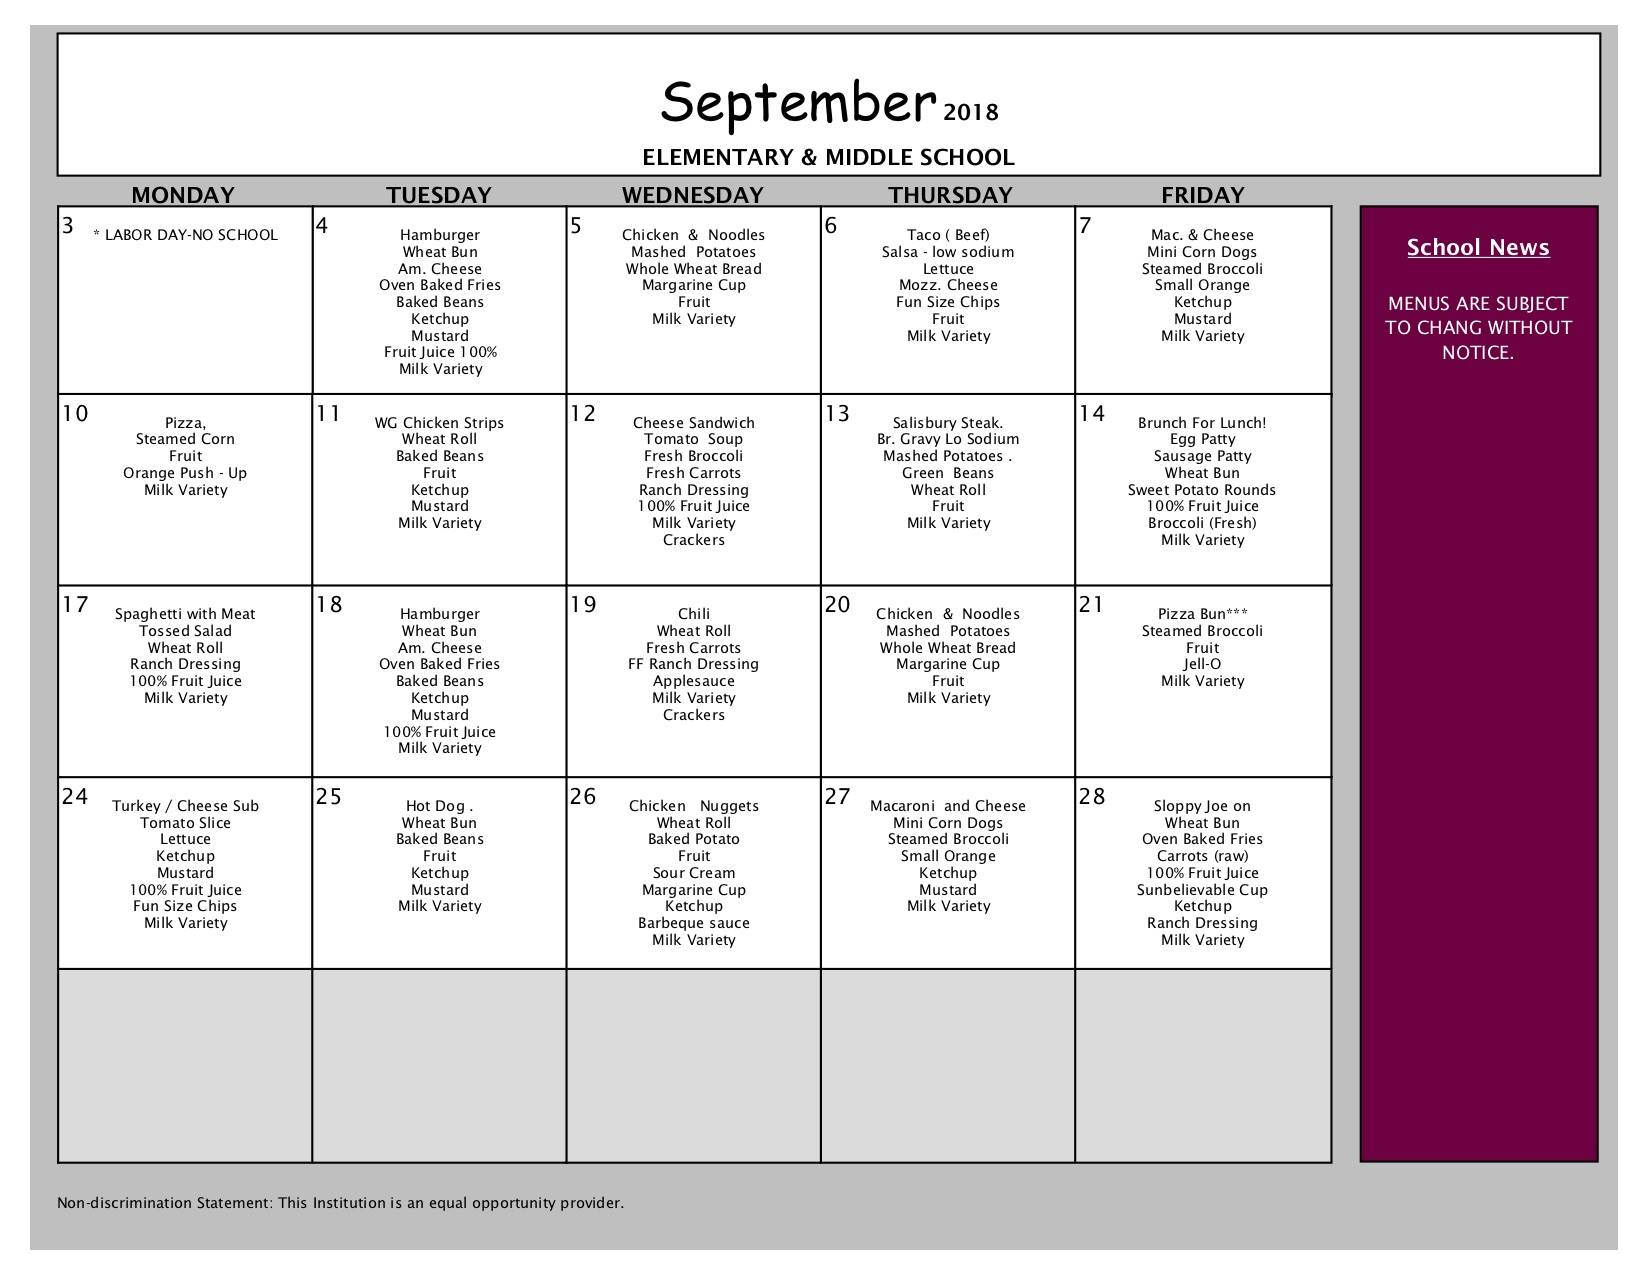 September Lunch Menu - Elementary and Middle Schools